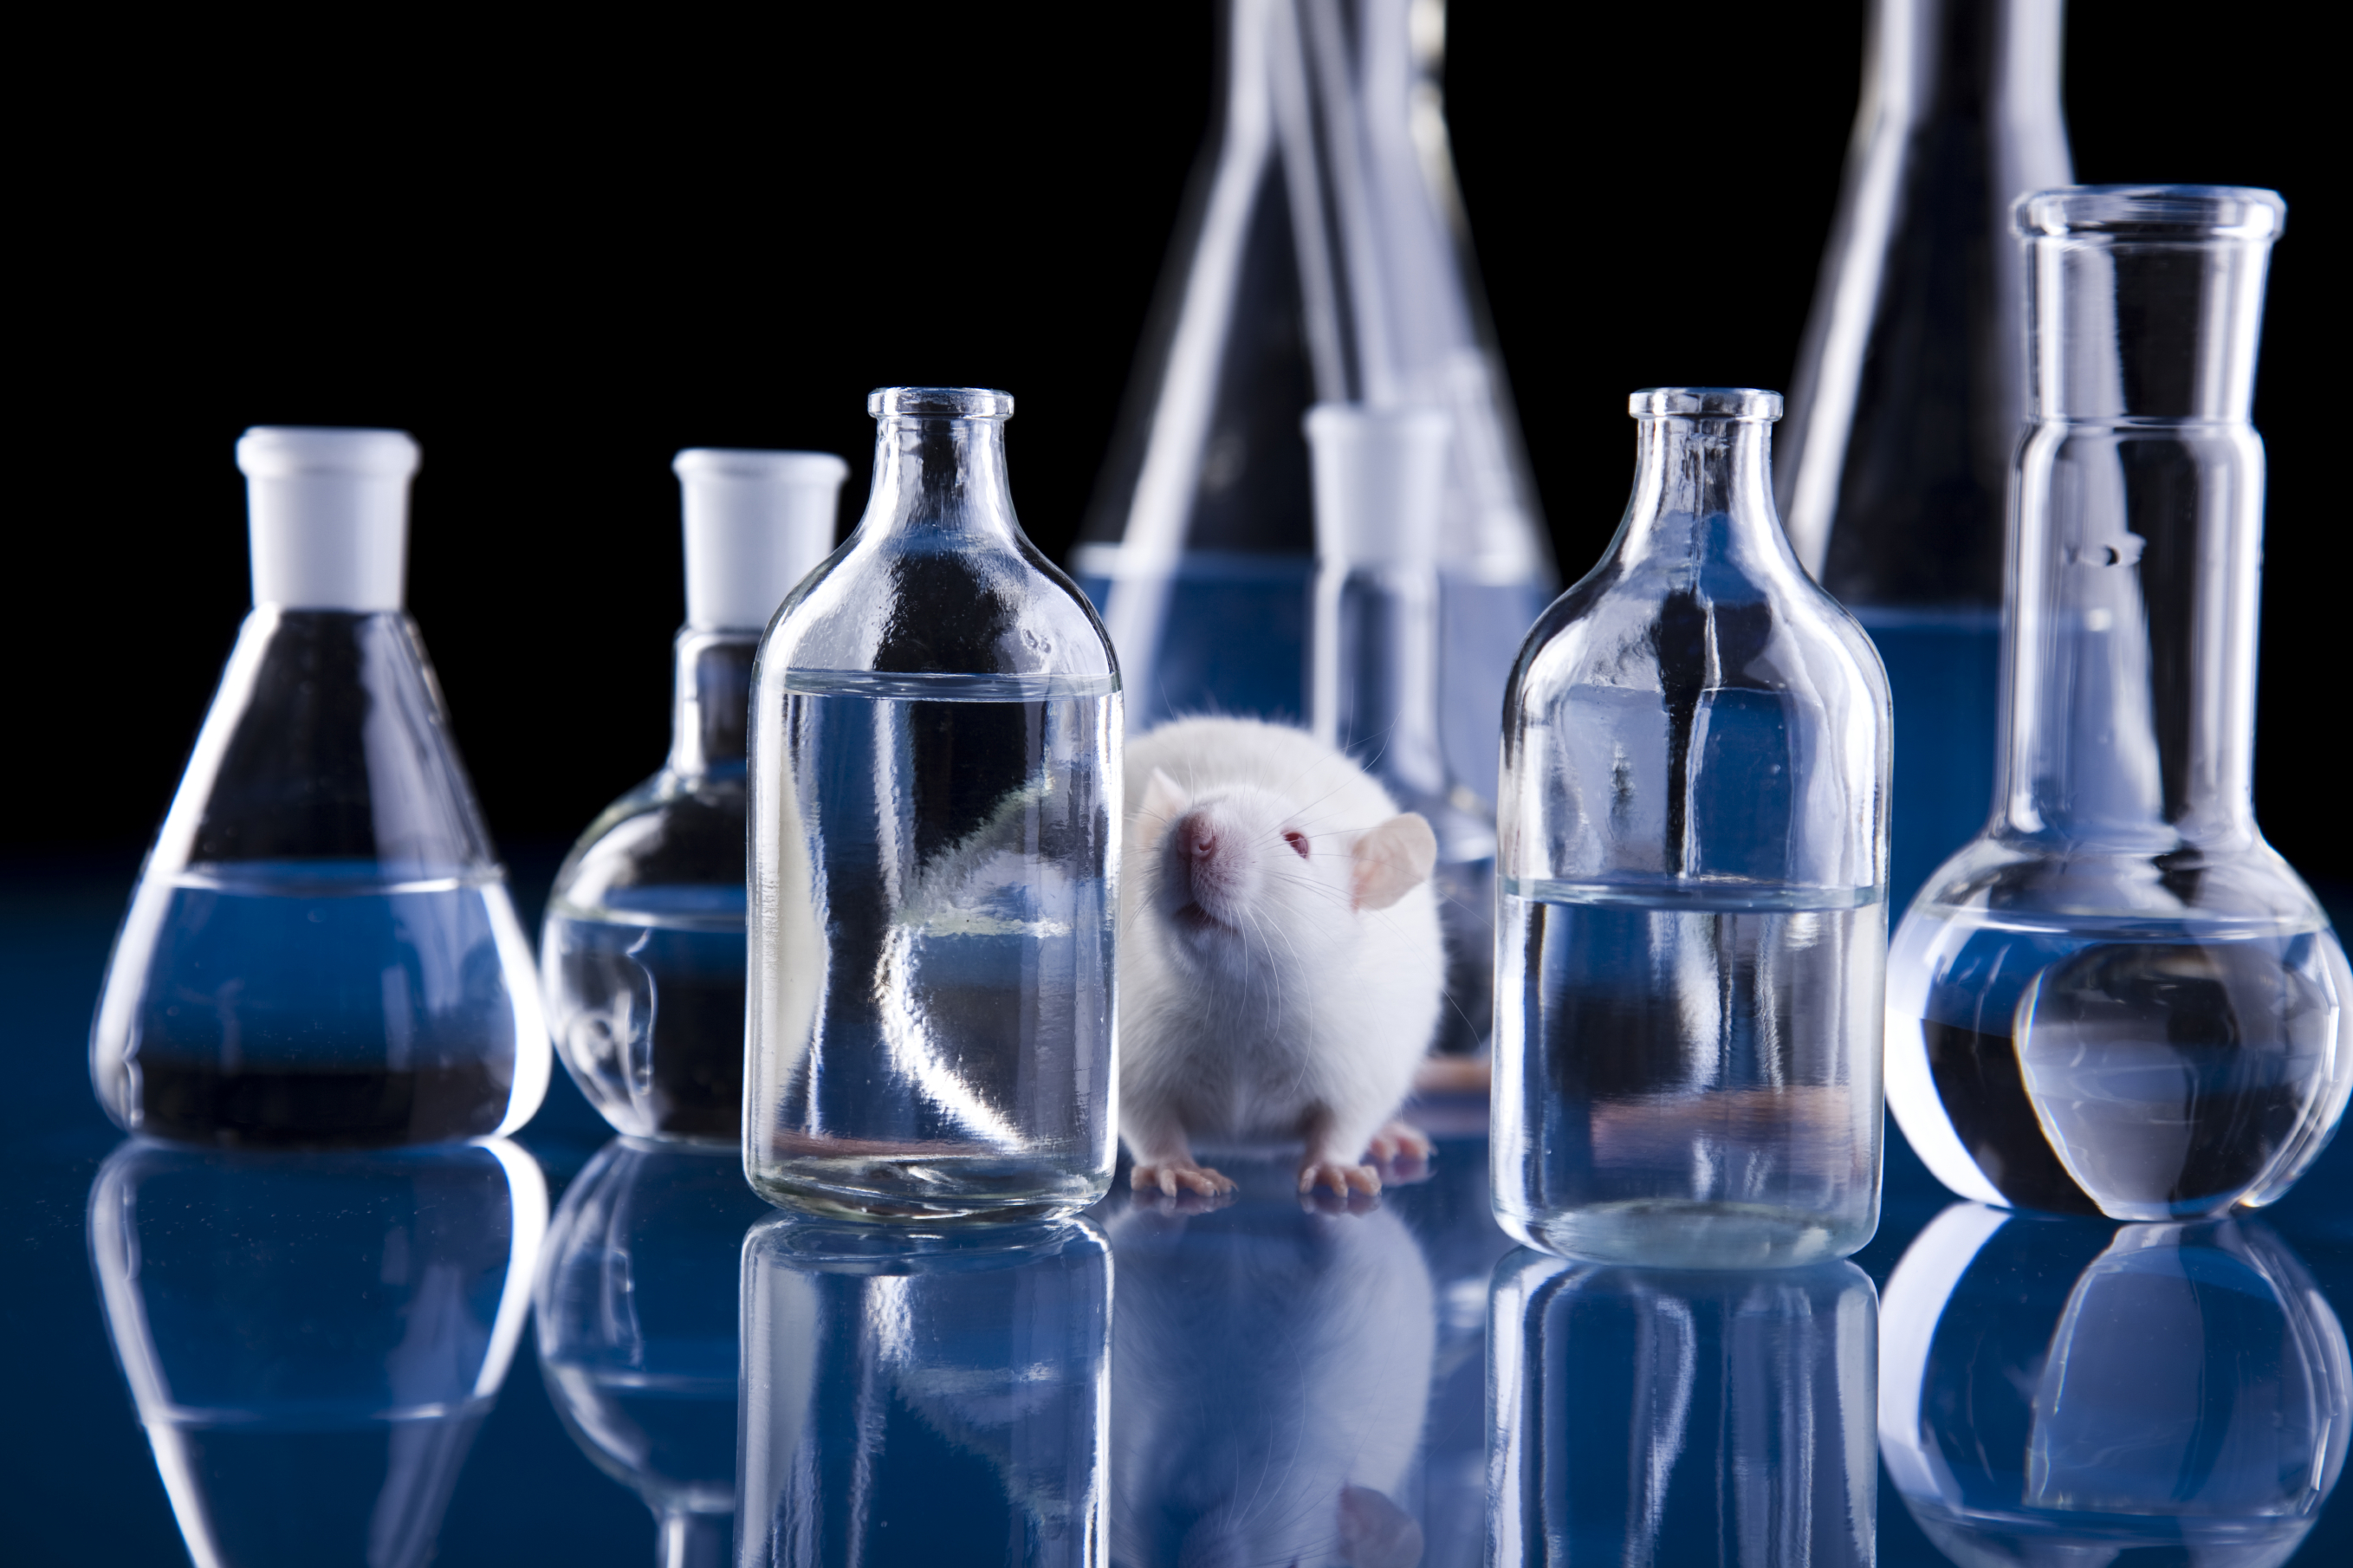 rat_amid_lab_glass_blue.jpg